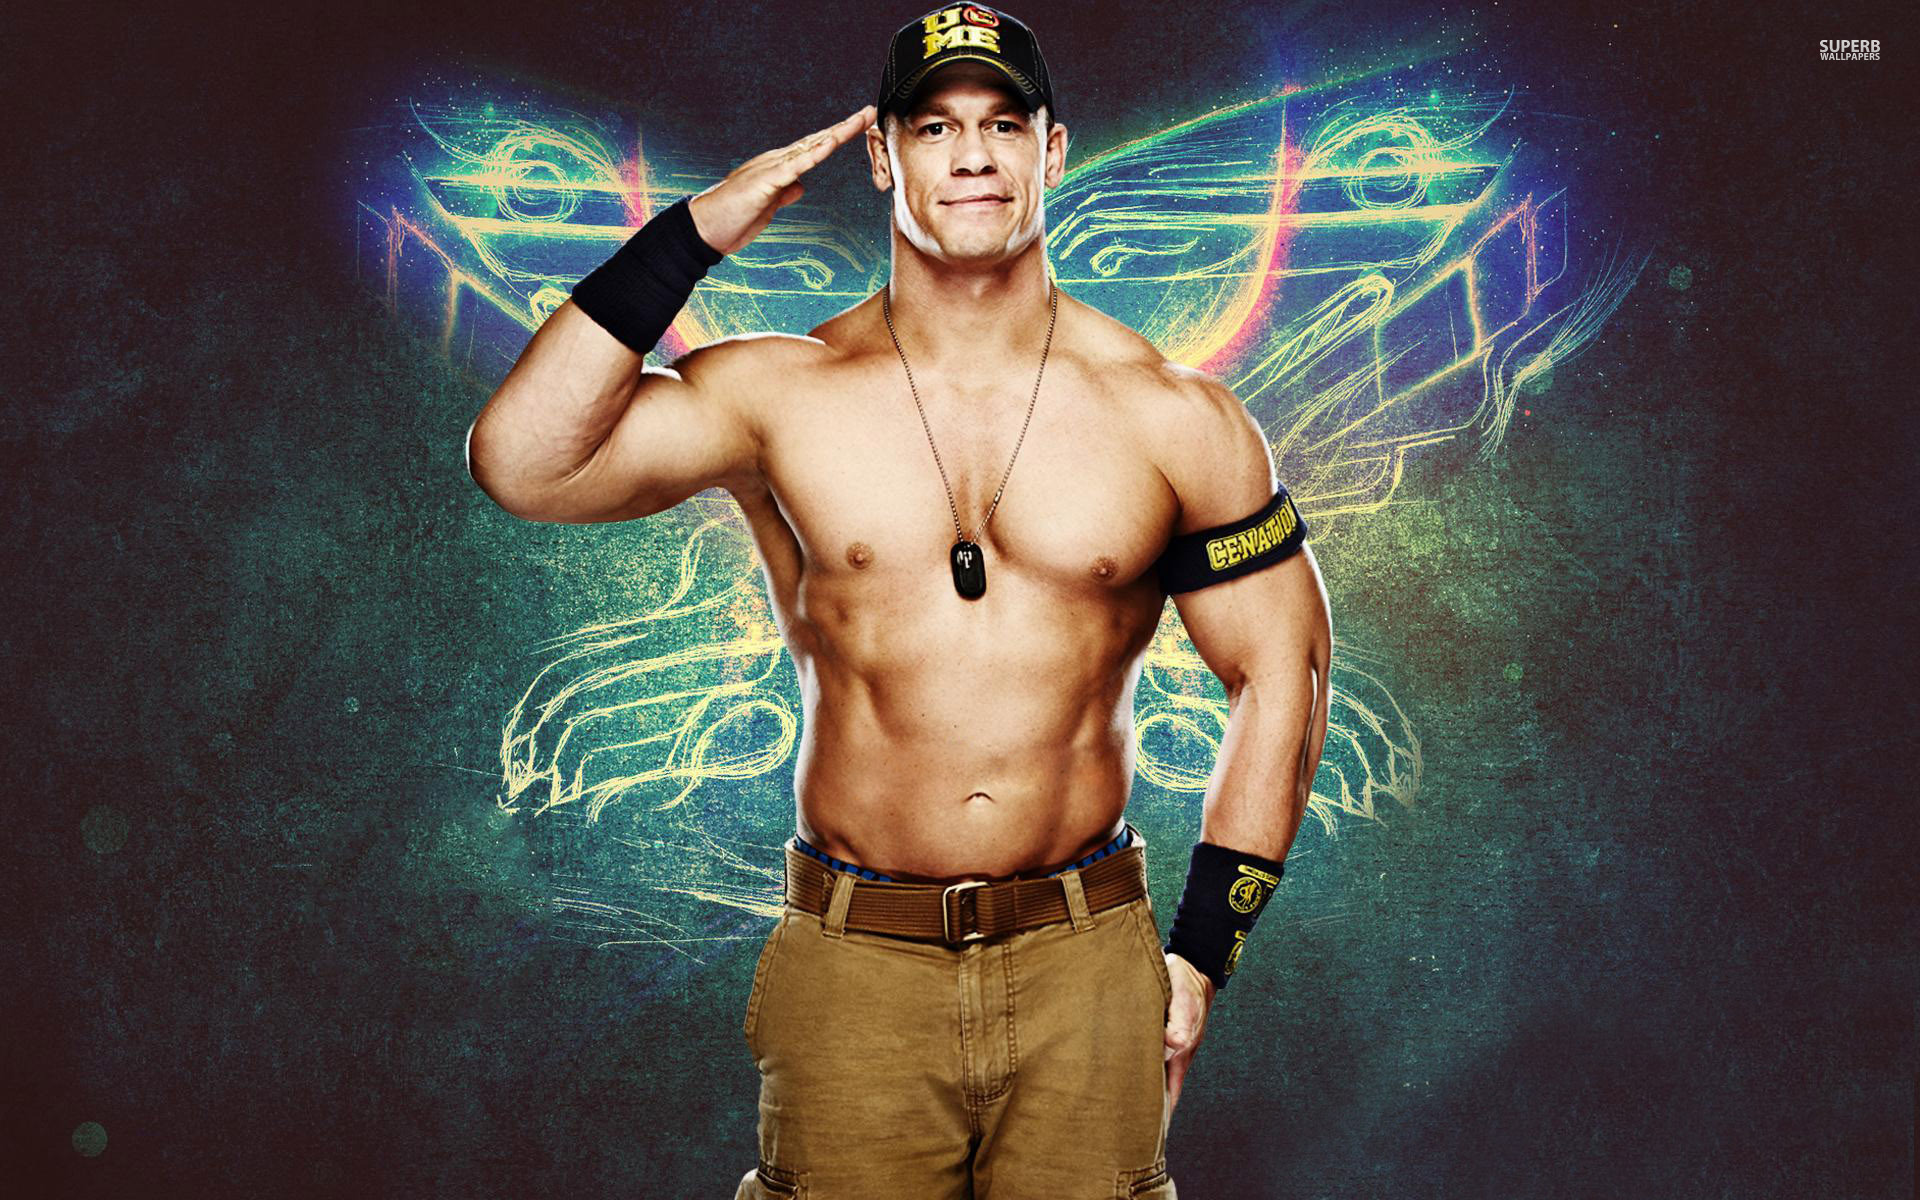 John-Cena-Hd-Collection-For-Free-Download-wallpaper-wp3407614